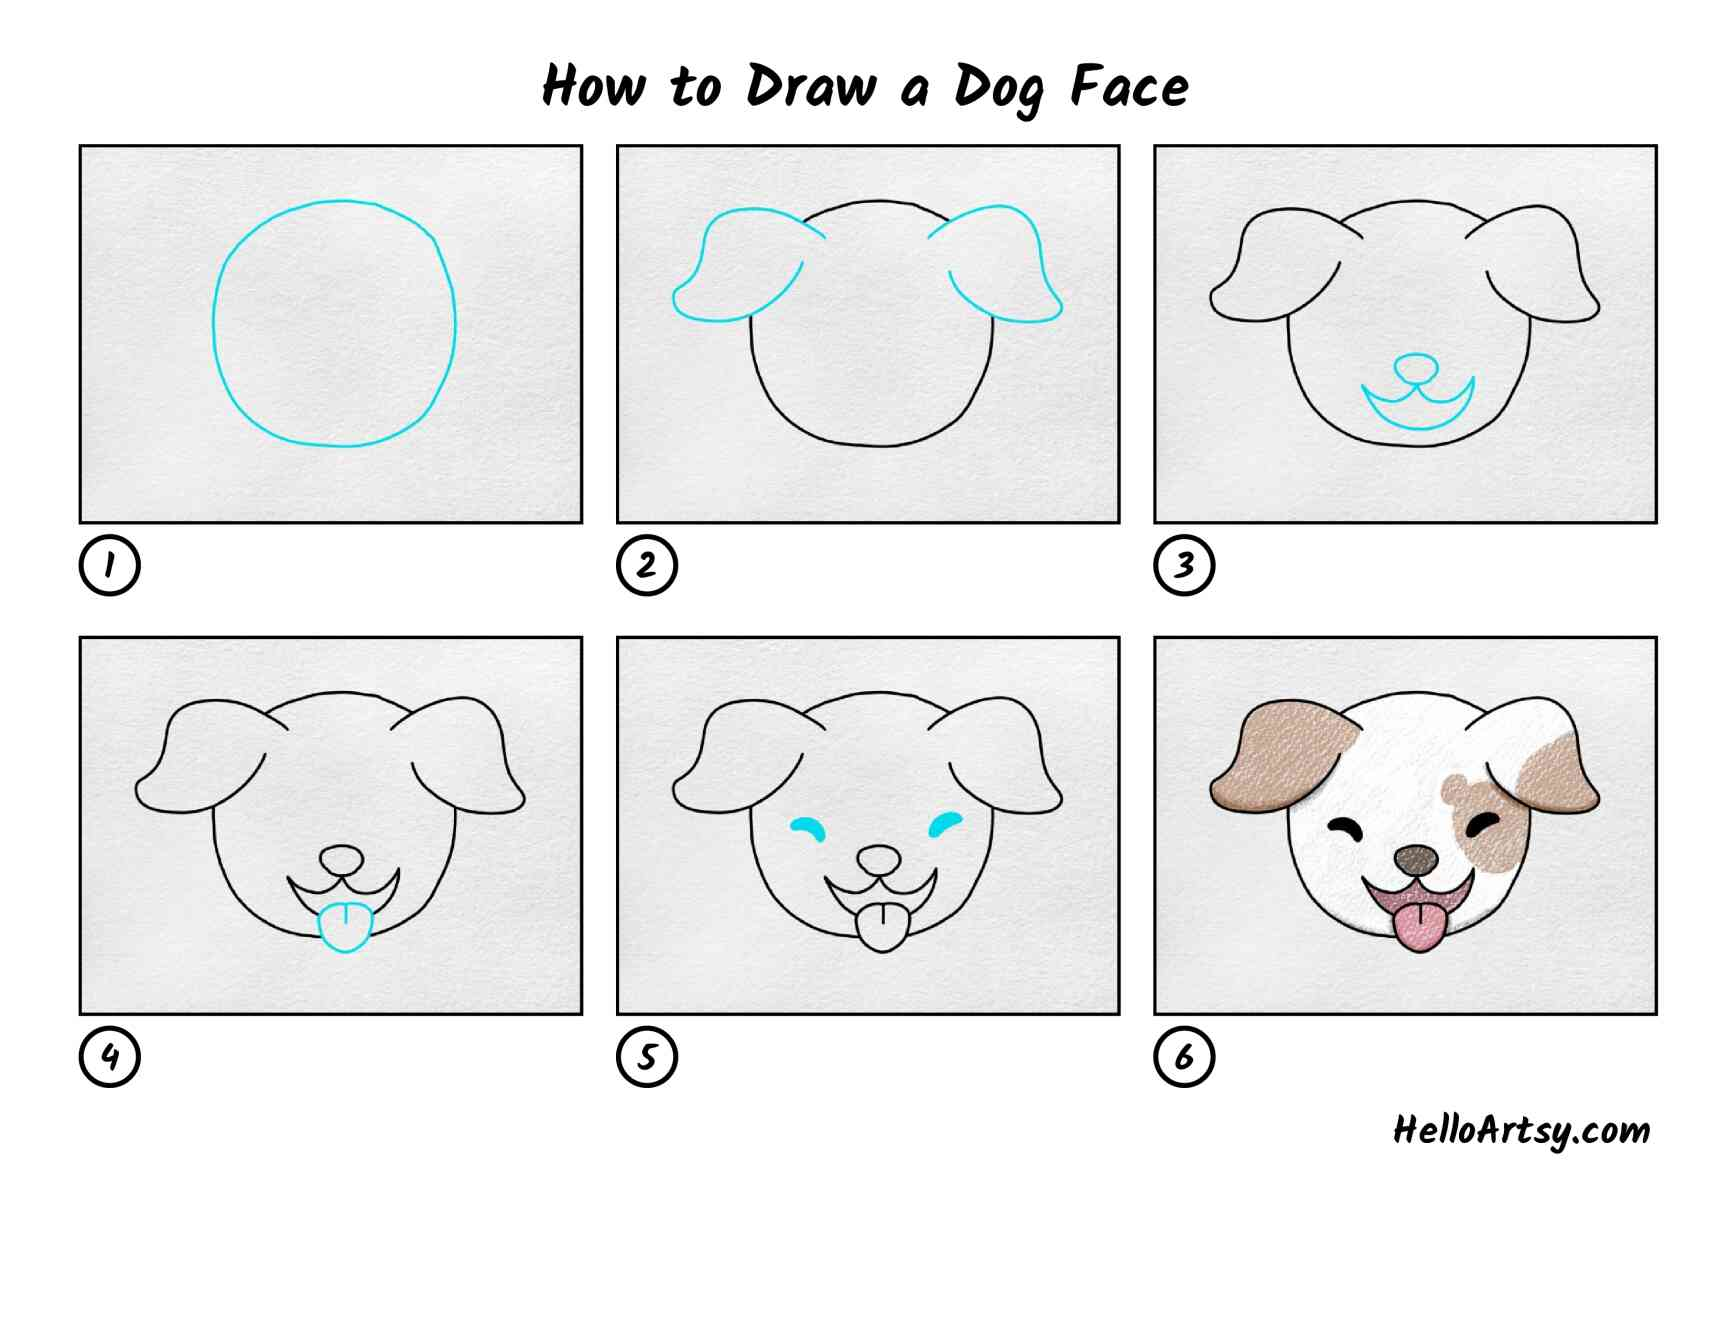 How To Draw A Dog Face: All Steps